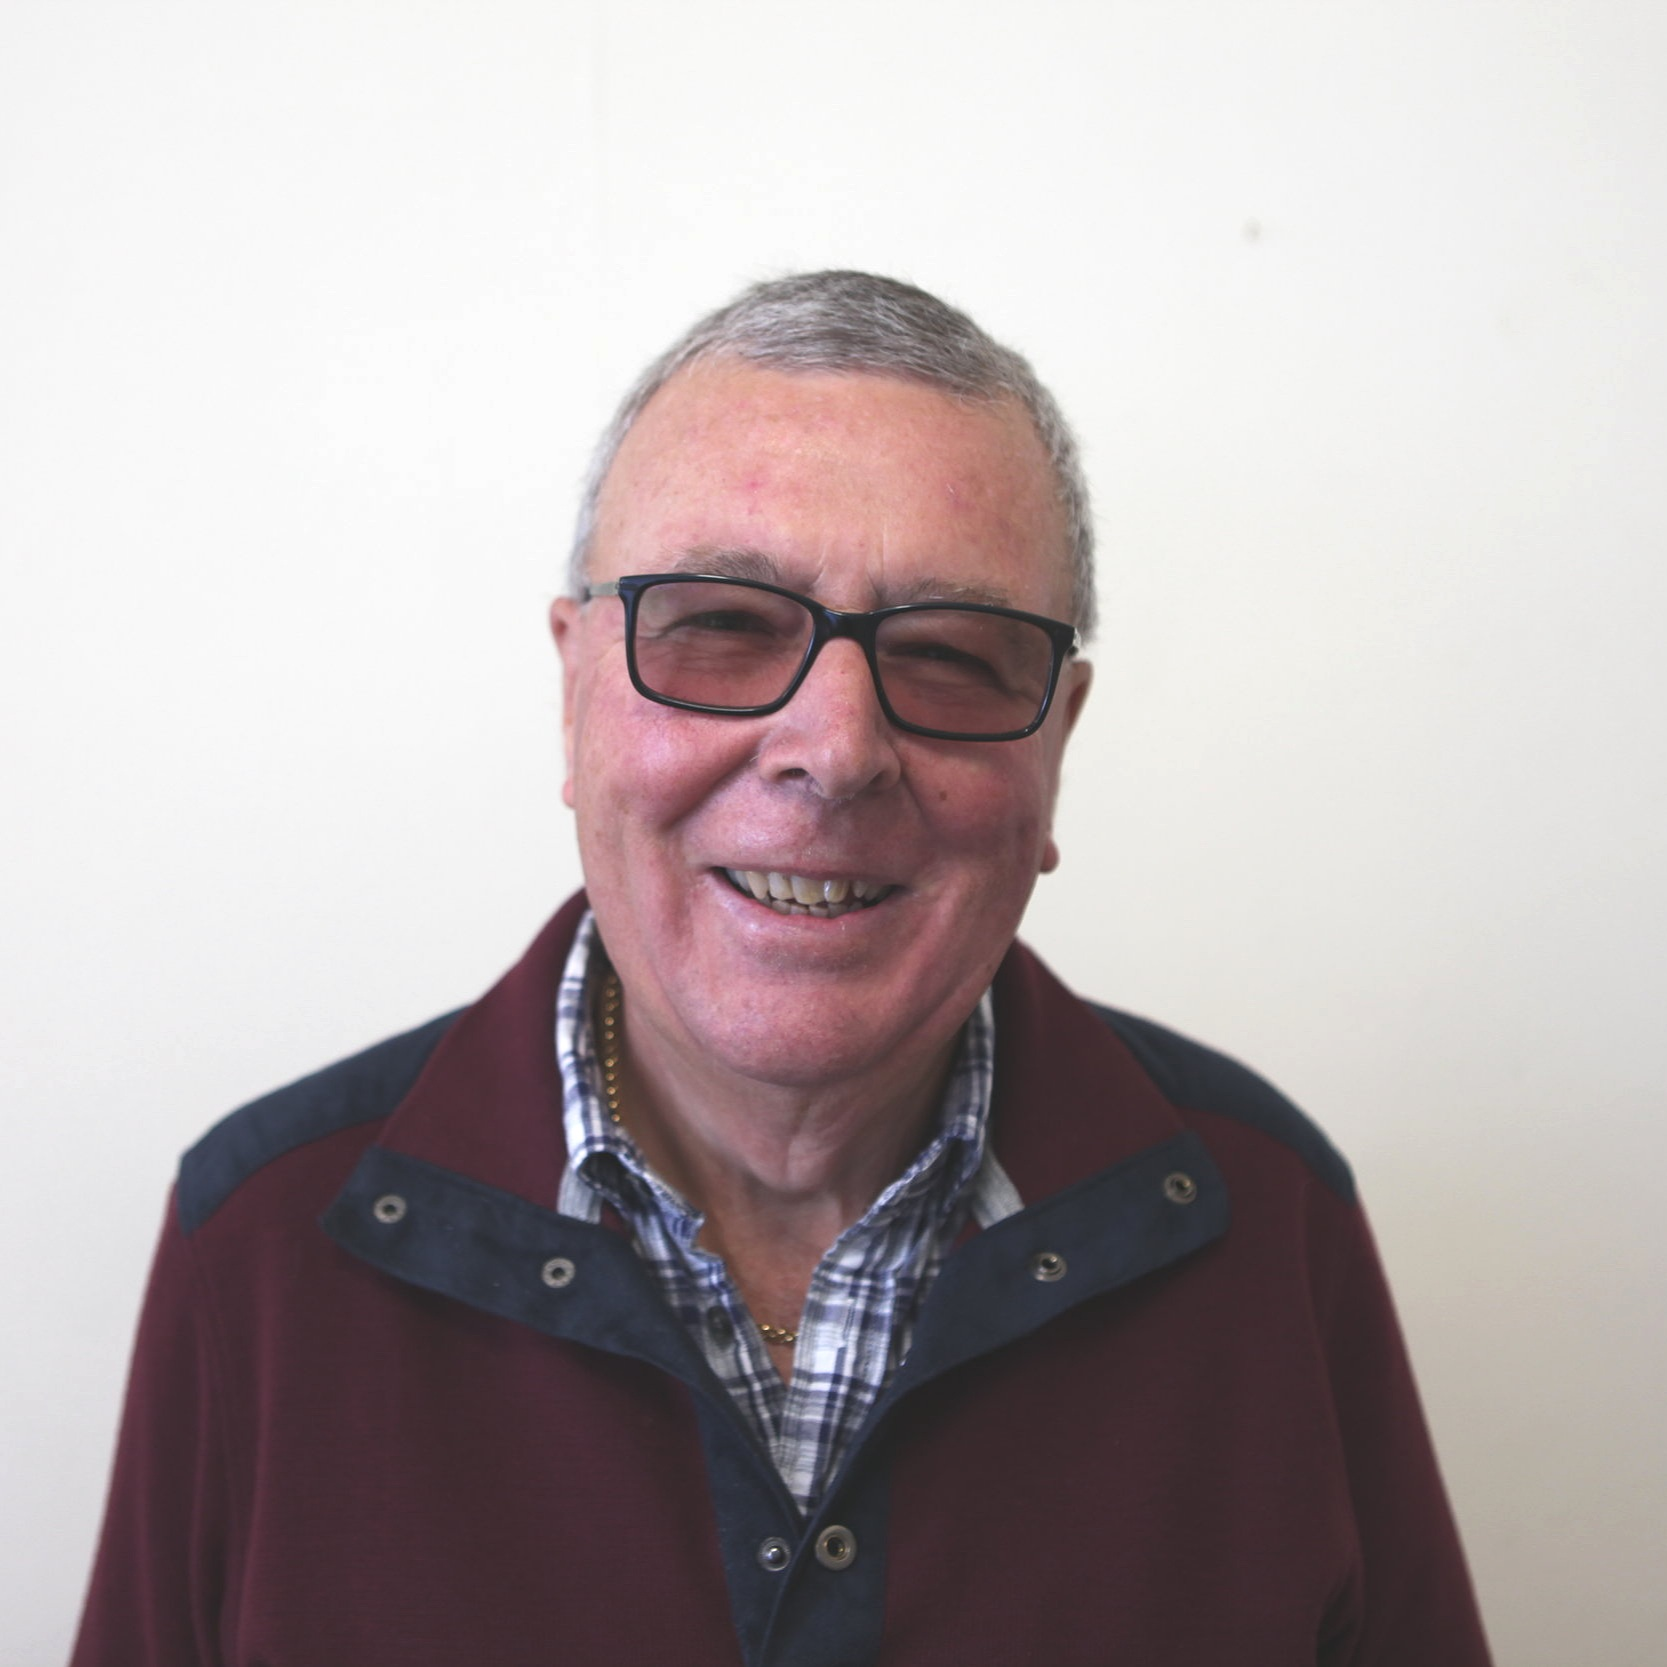 Ray Wilson  An Aircraft Industry veteran of over 40 years manufacturing and management service. Worked in France and USA as well as U.K. Committed Christian with multi-denominational background, youth work and leadership experience.